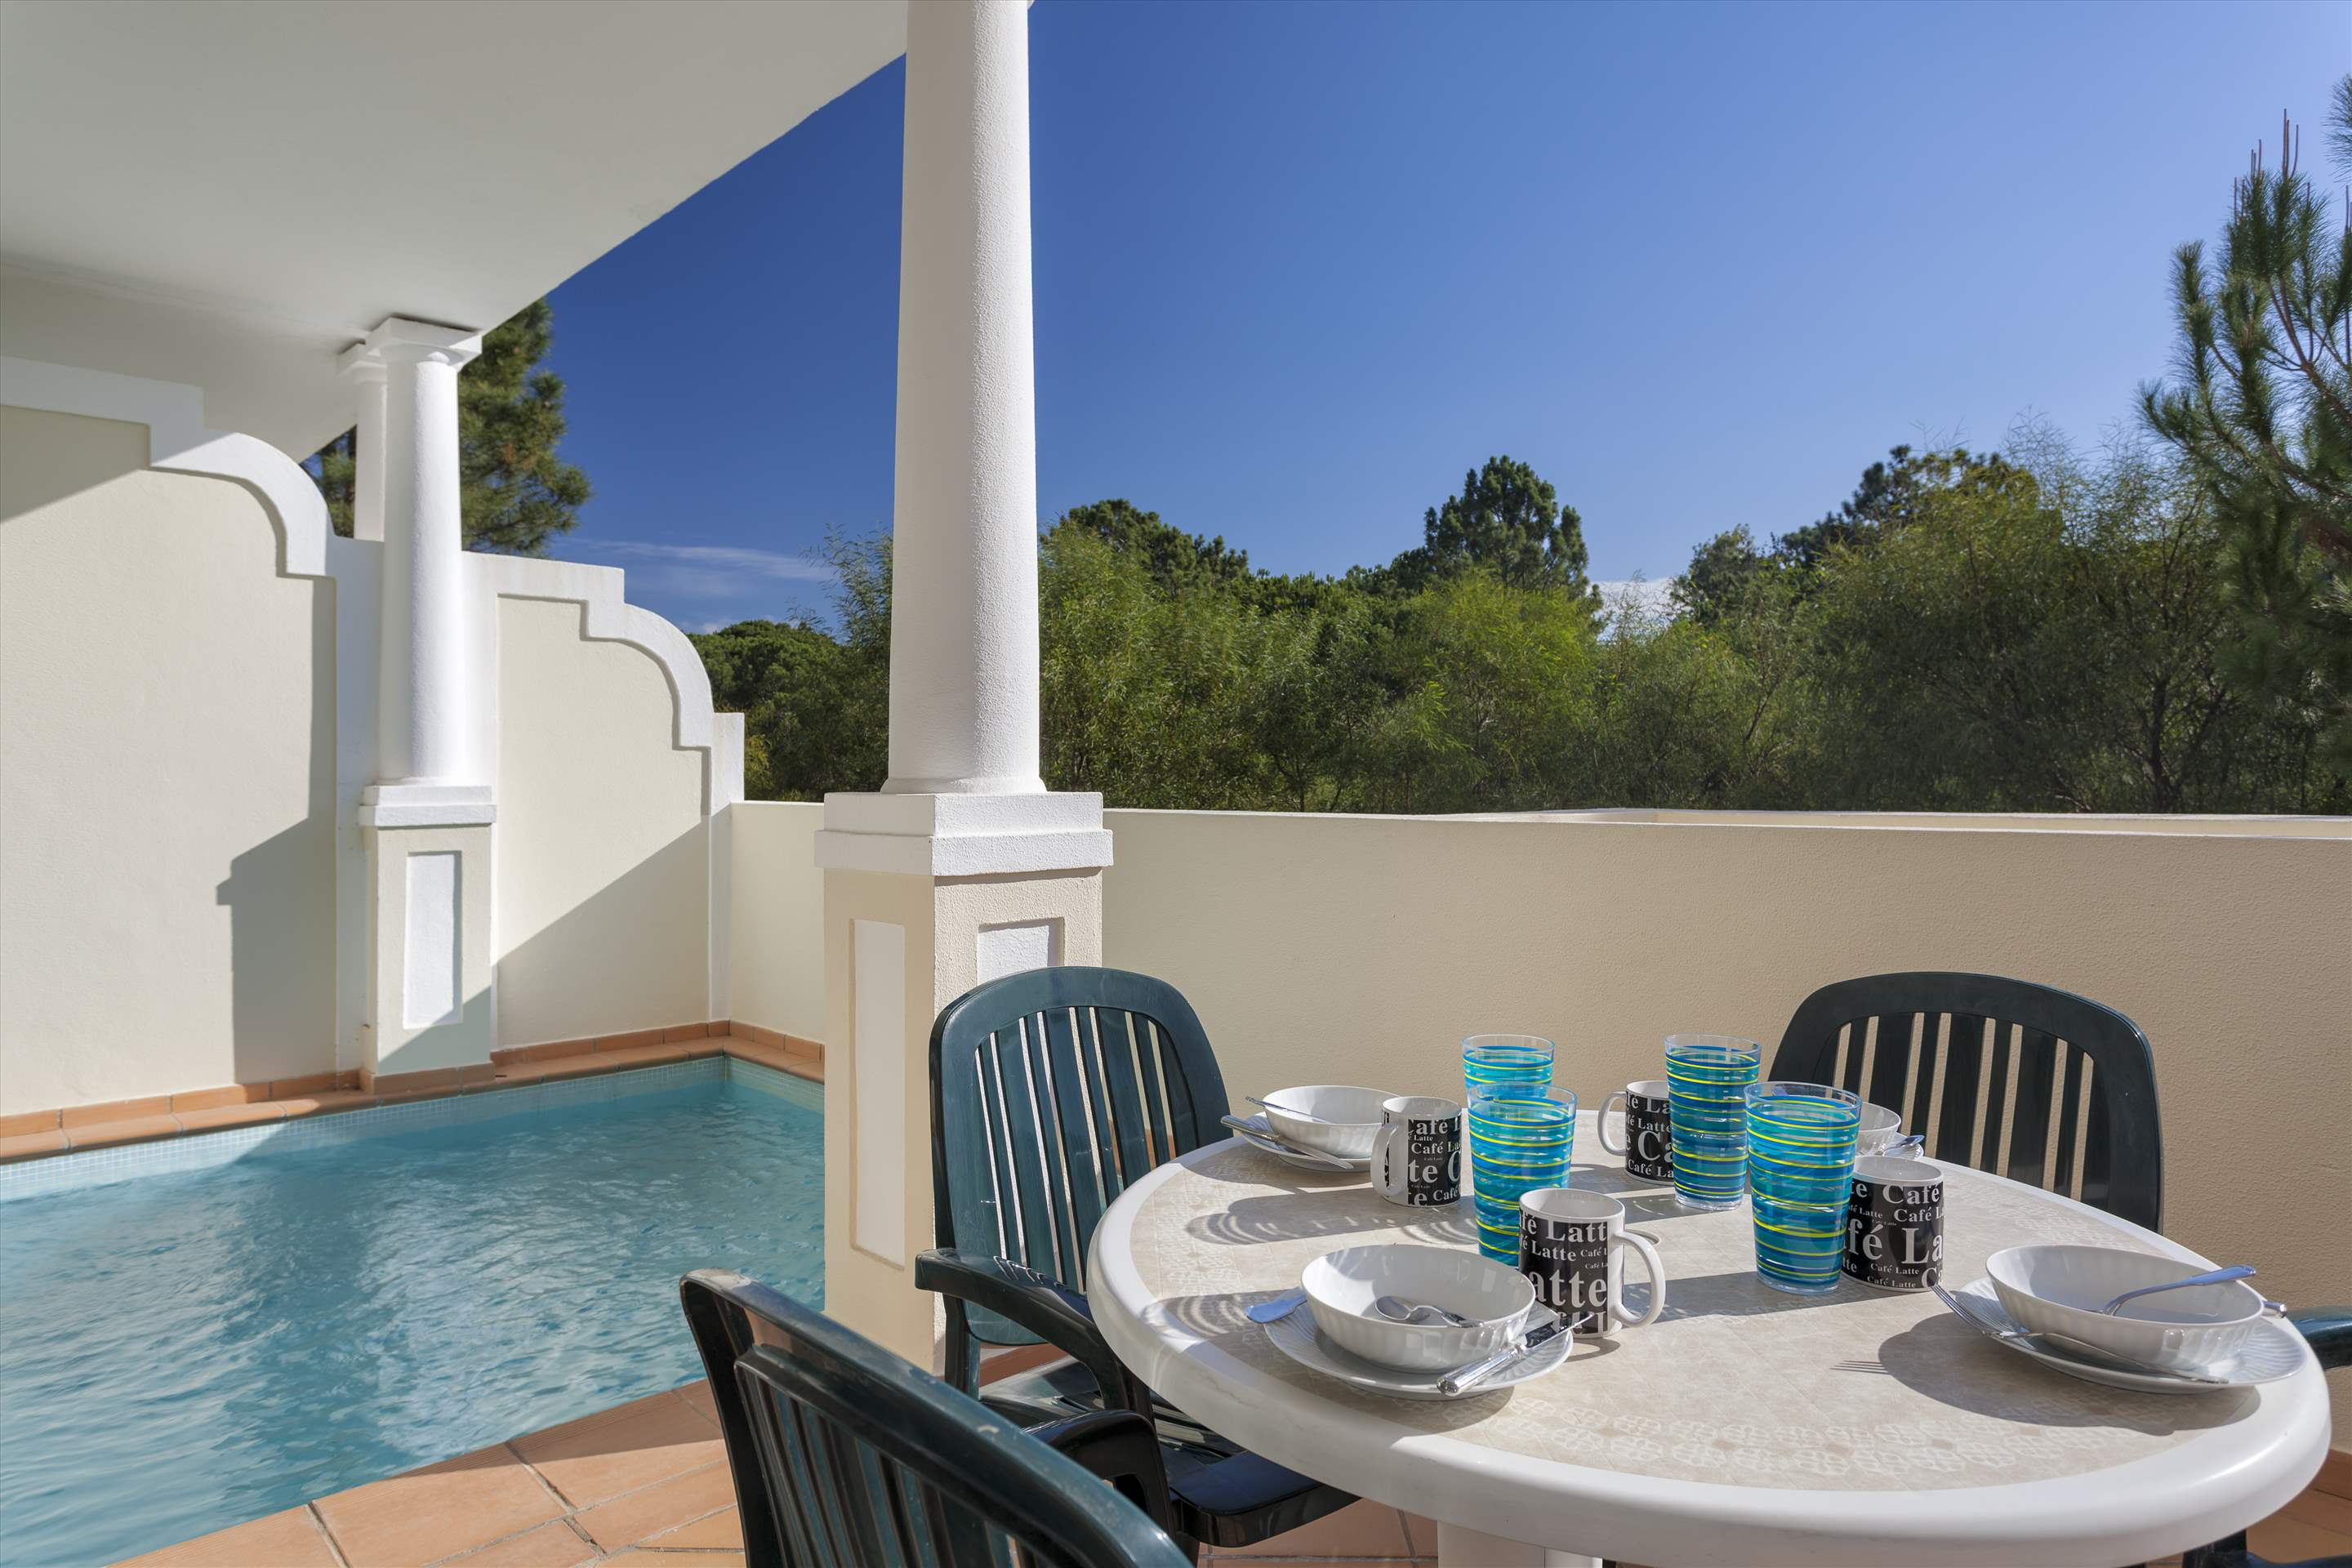 Apartment Dorothea, 1 bedroom apartment in Vale do Lobo, Algarve Photo #3